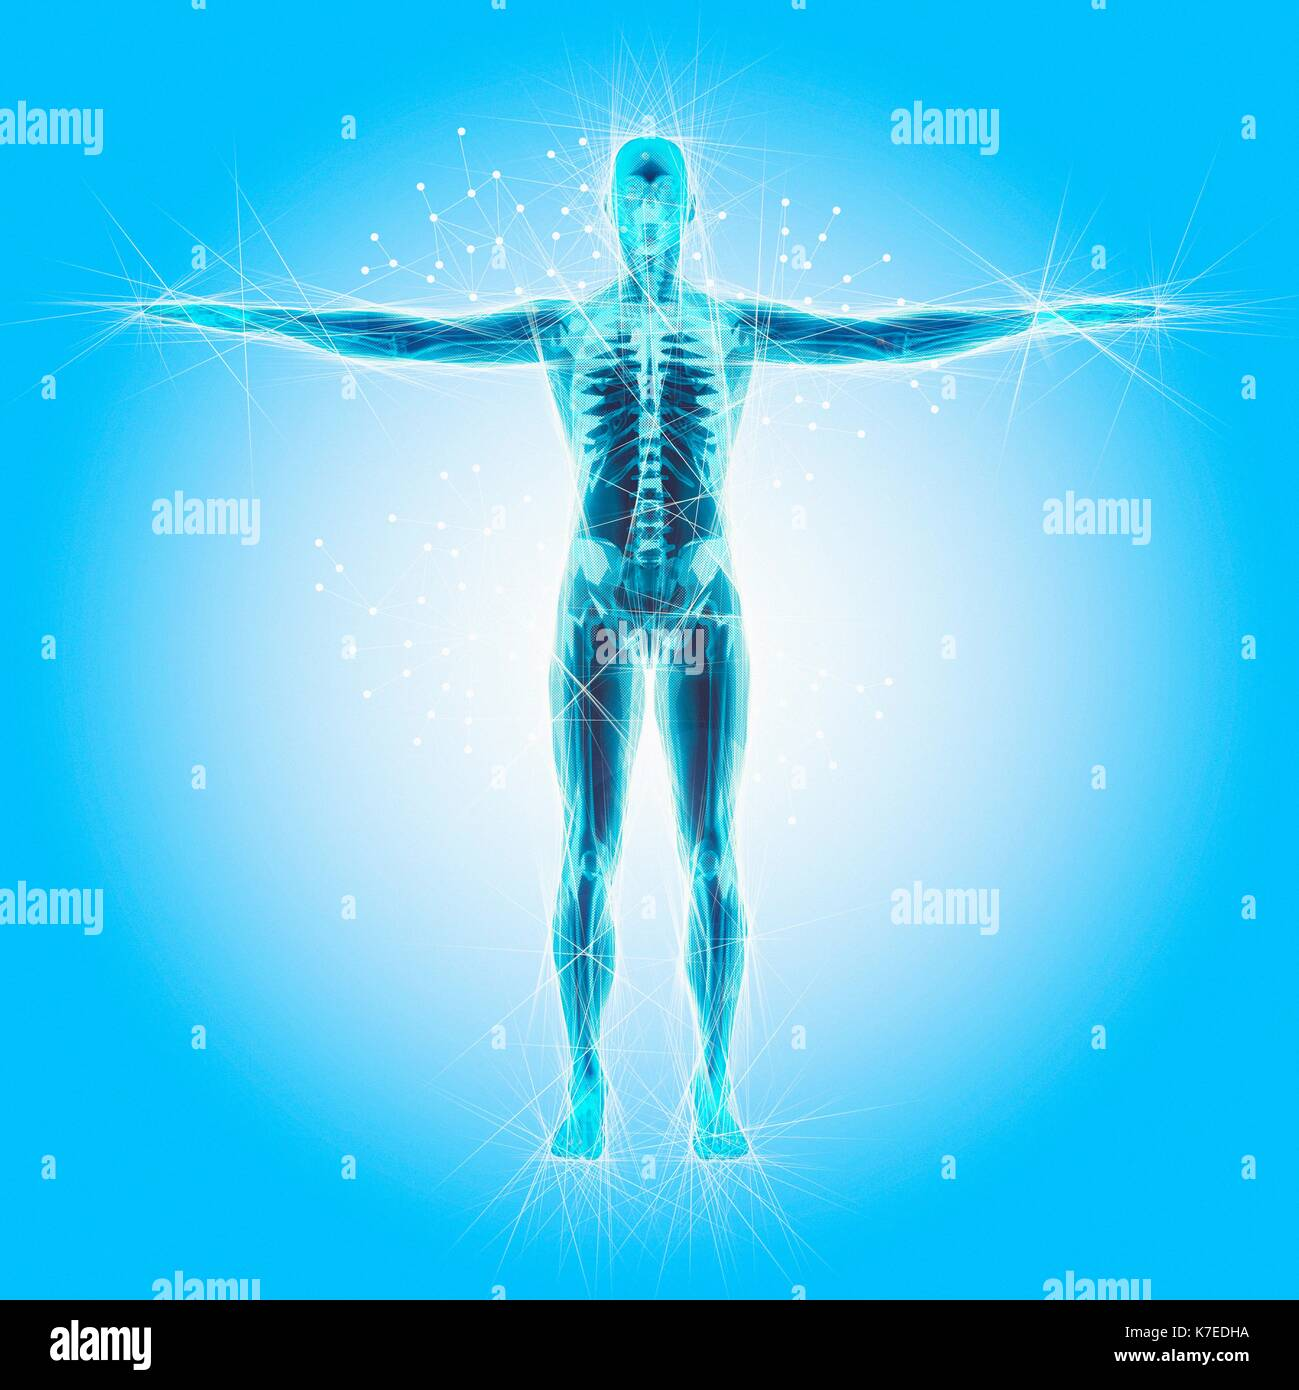 Atomic Structure Of The Human Body Illustration Stock Photo